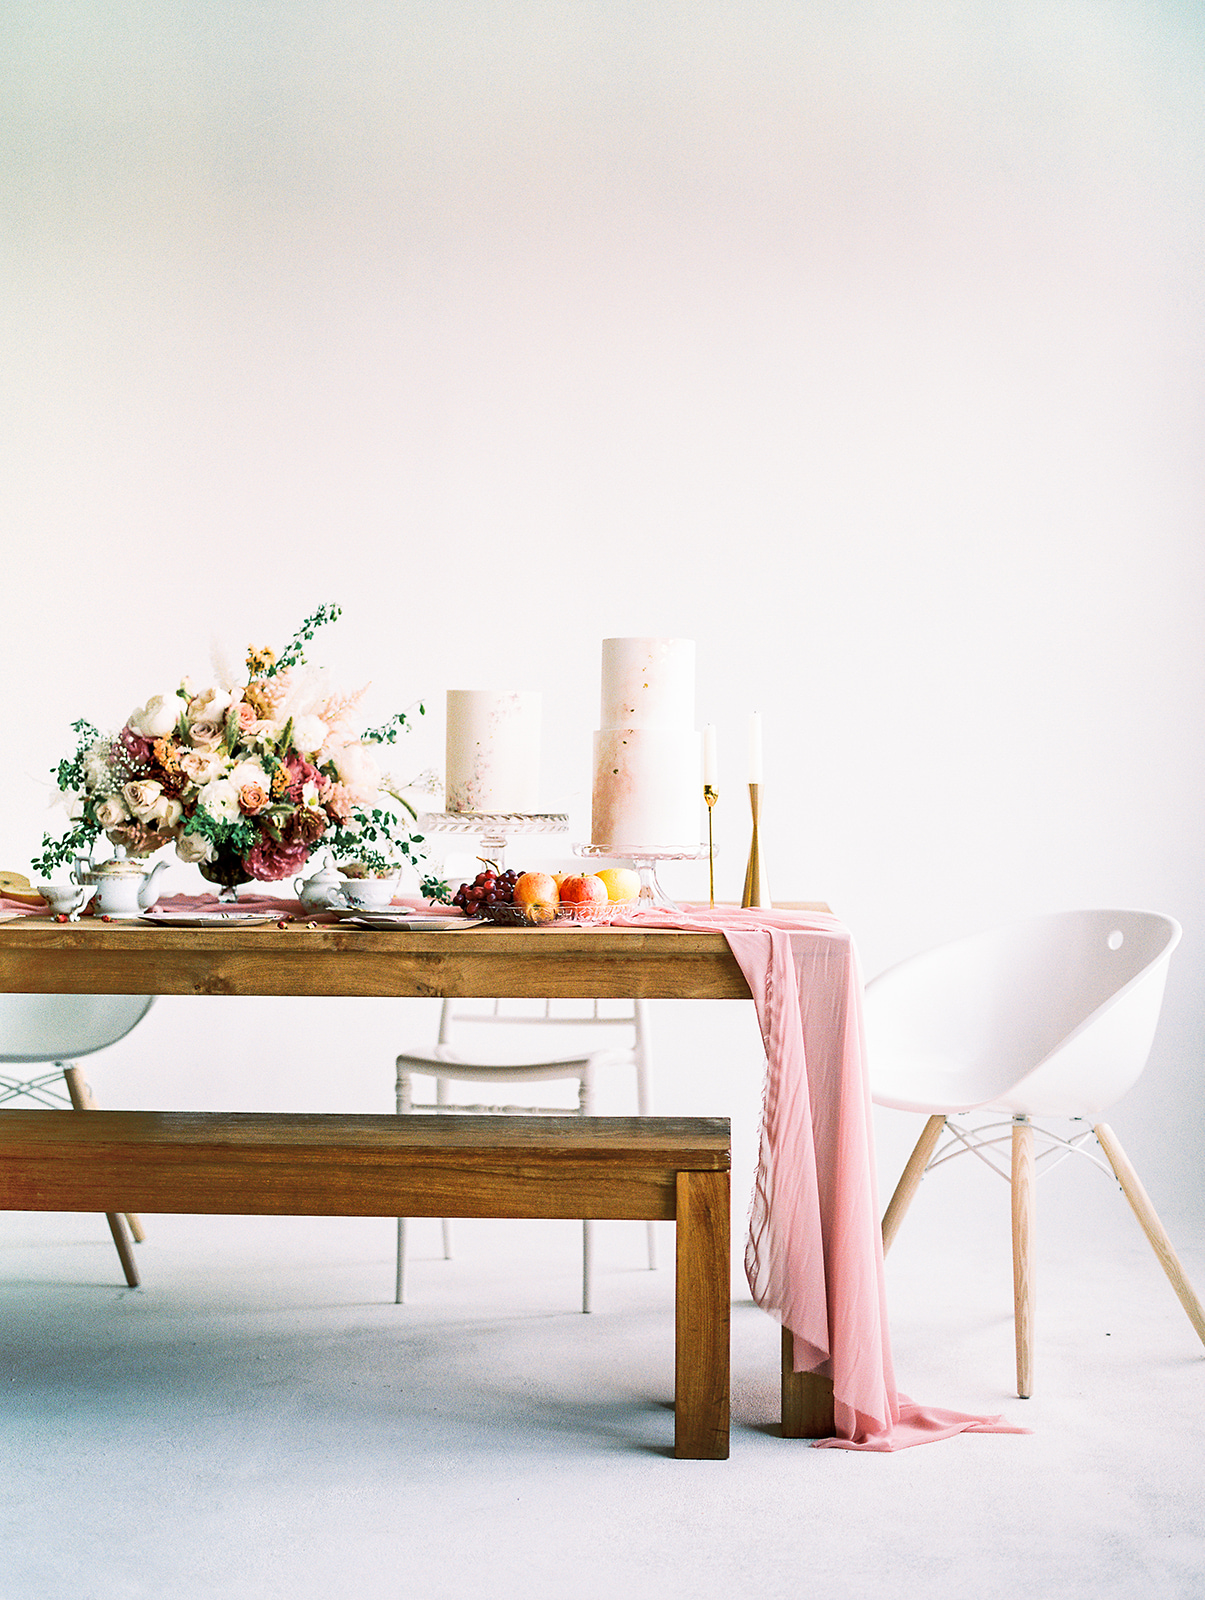 Cakes by  Sugar Lane .Styled by  Olea & Fig Studio ; Photo by  Kylee Yee Photography .